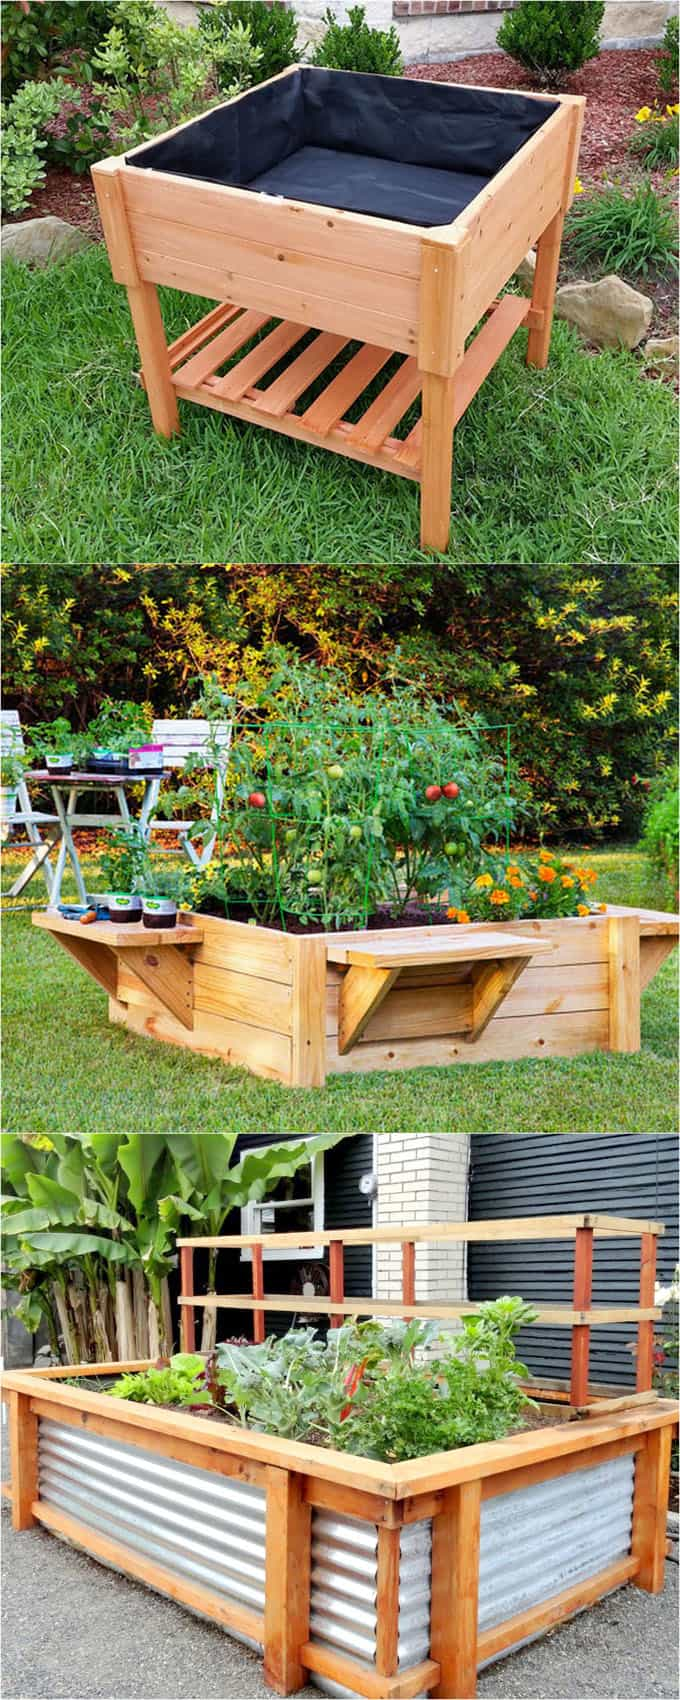 All About Diy Raised Bed Gardens Part 1 A Piece Of Rainbow